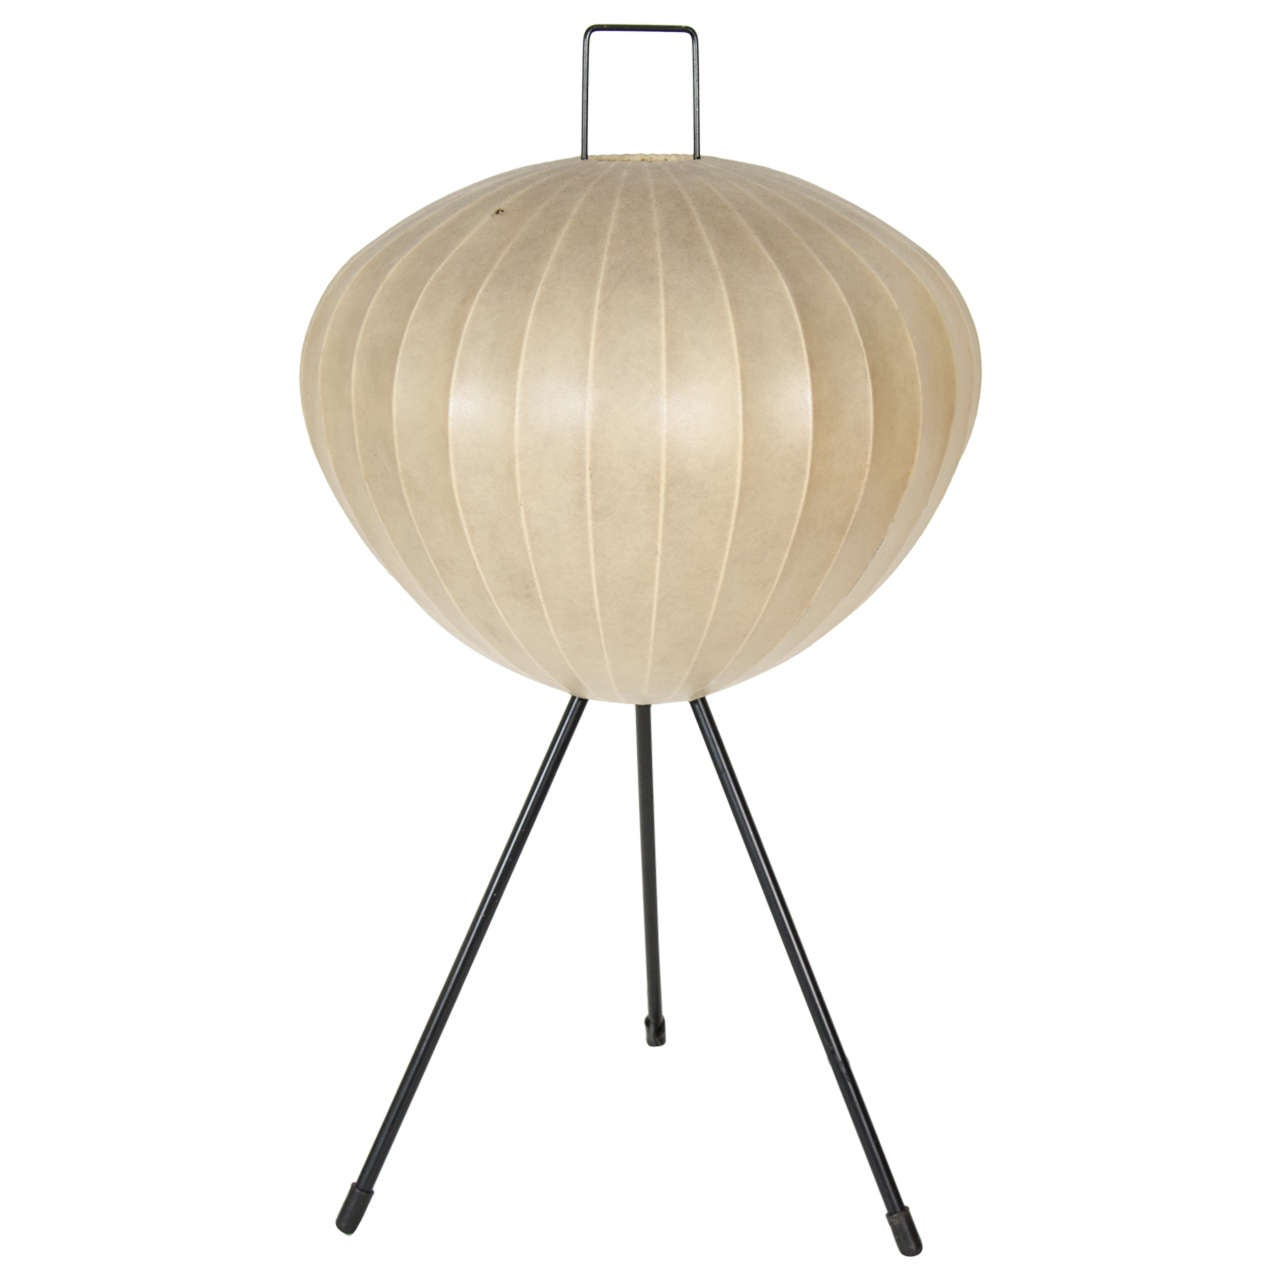 1950s tripod bubble floor lamp on tripod base for sale at 1stdibs. Black Bedroom Furniture Sets. Home Design Ideas